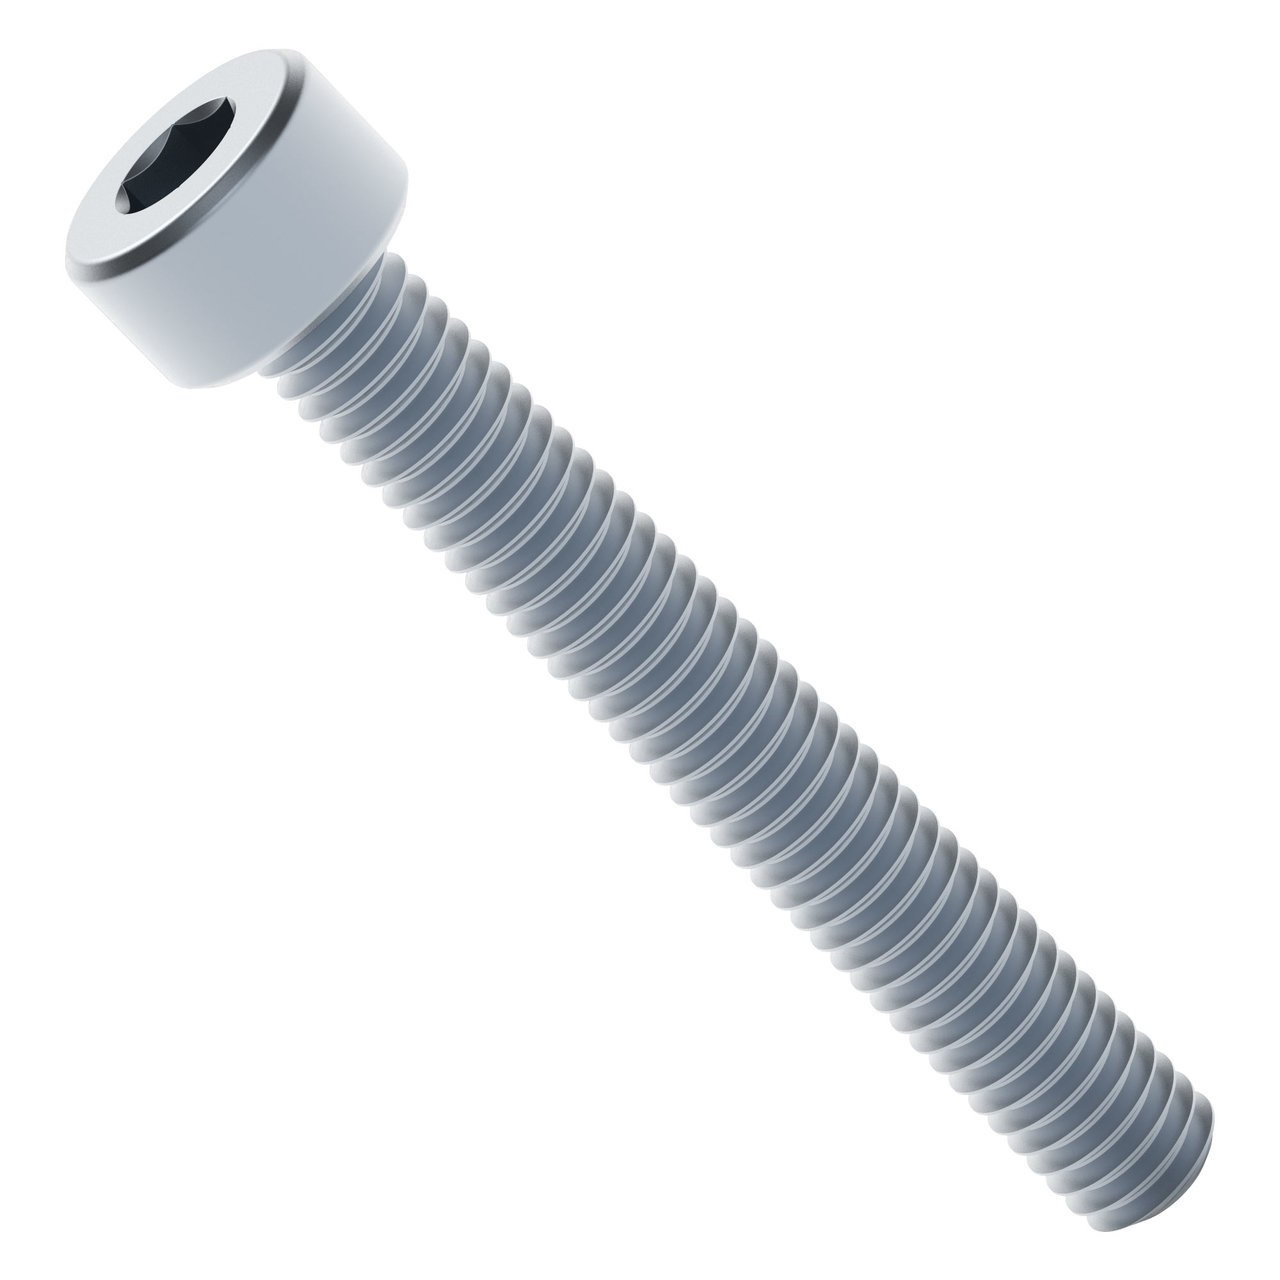 M4 Socket Head Cap Screw